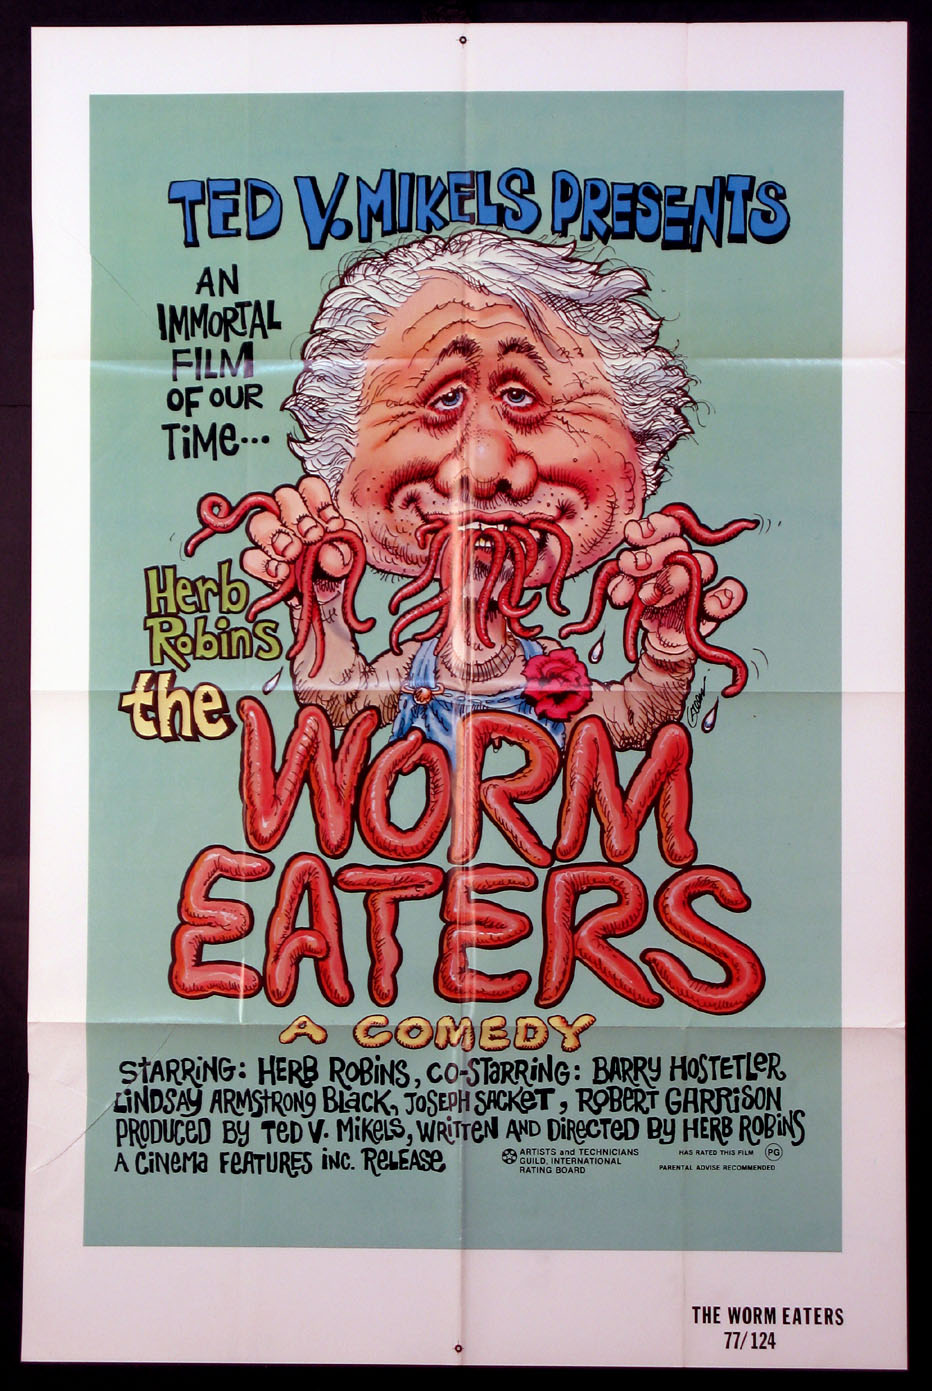 WORM EATERS, THE (The Worm Eaters) @ FilmPosters.com